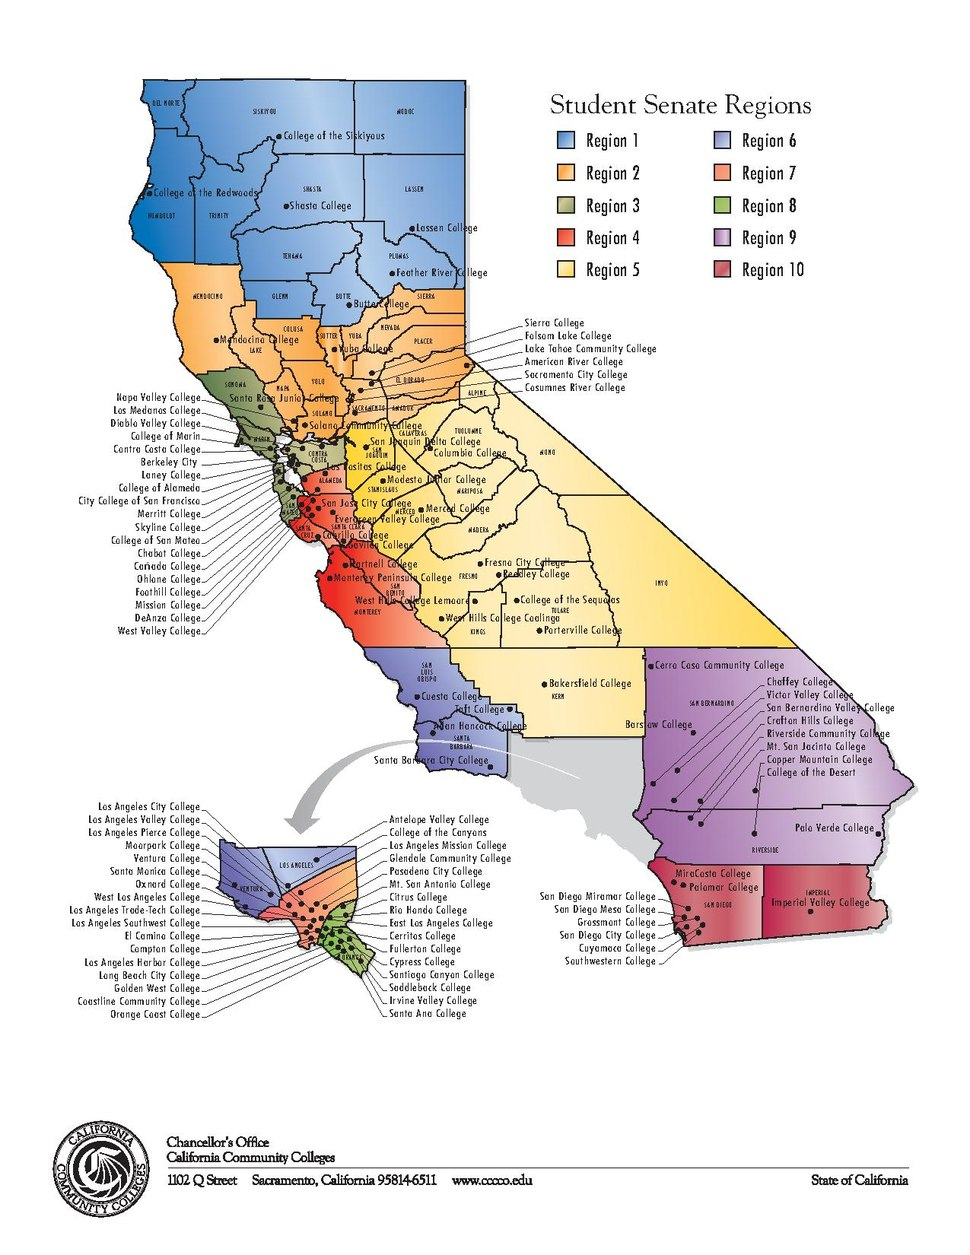 grossmont college student housing • map of great lakes region map  - grossmont college student housing • show low arizona map page pxstudent senate regions map grossmont